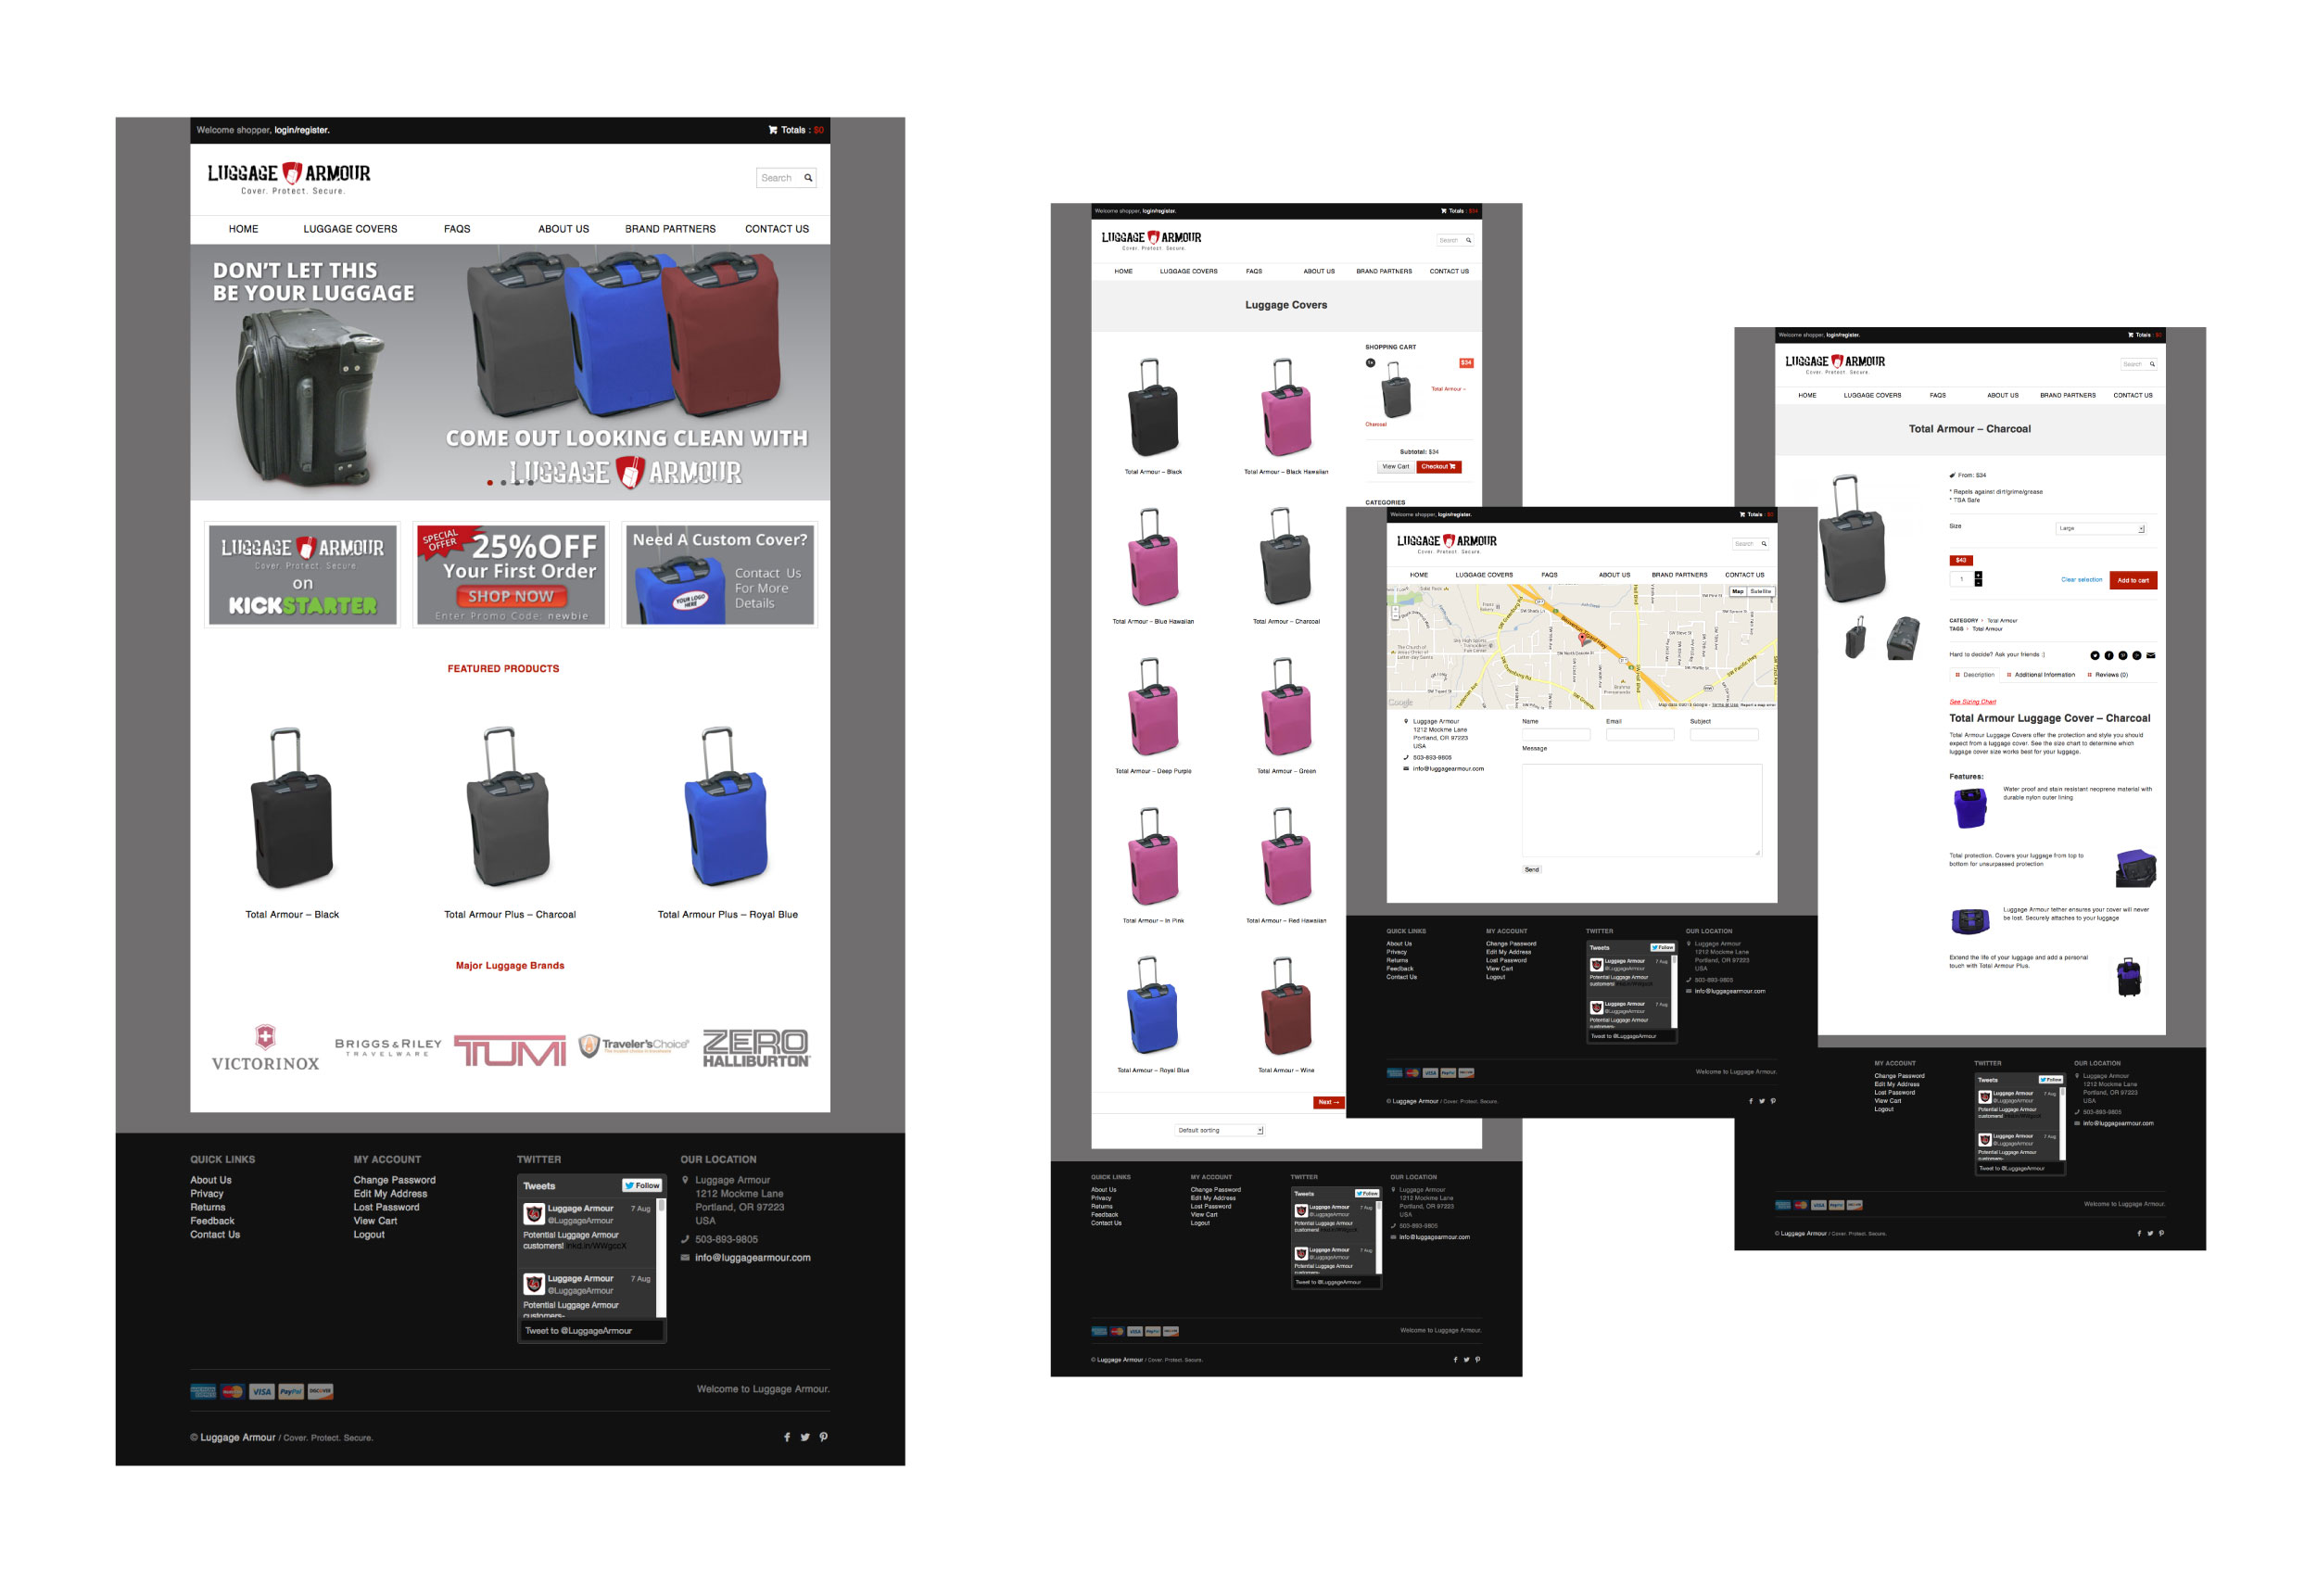 luggage armor website pages